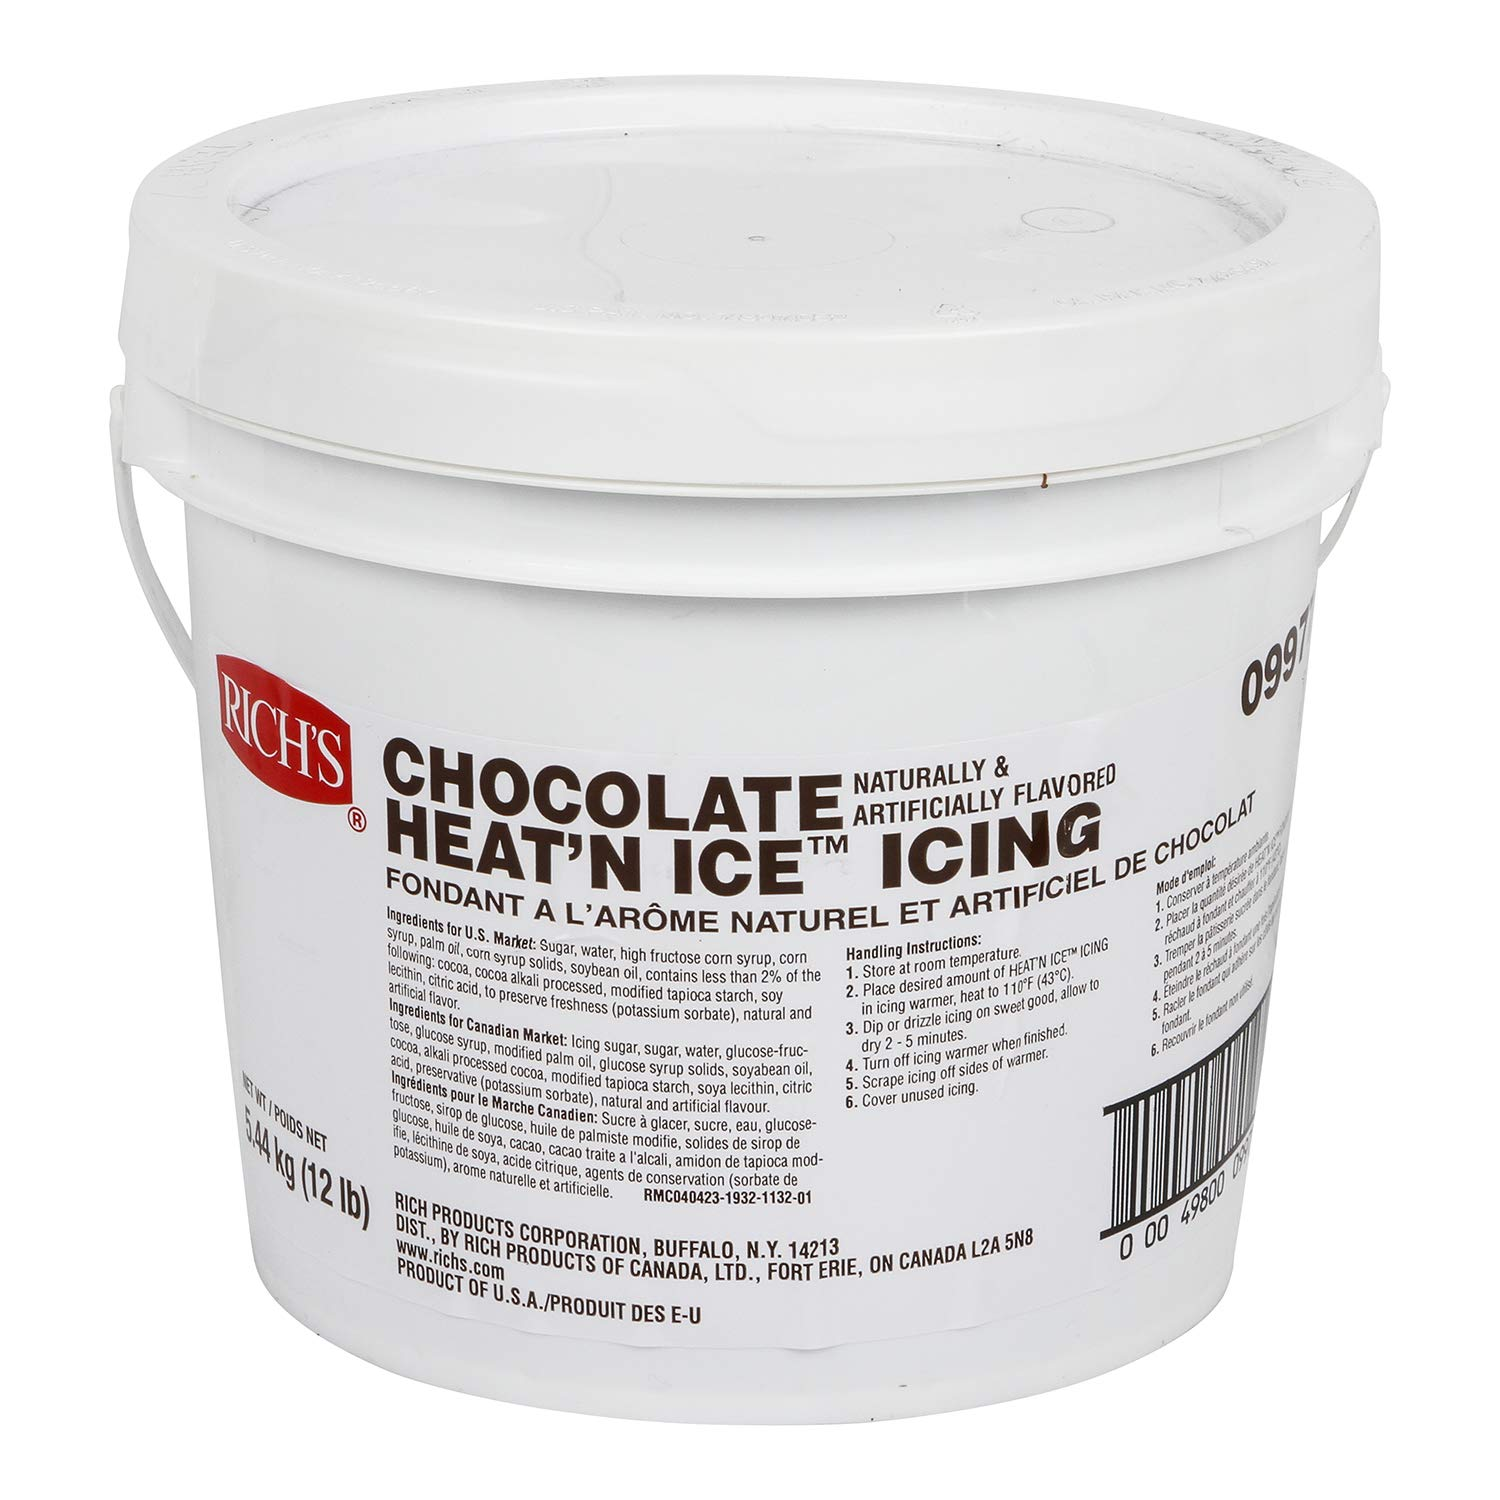 Rich's Heat 'N Ice Donut Icing for Donuts, Rolls & More, Chocolate, 12 lb Pail